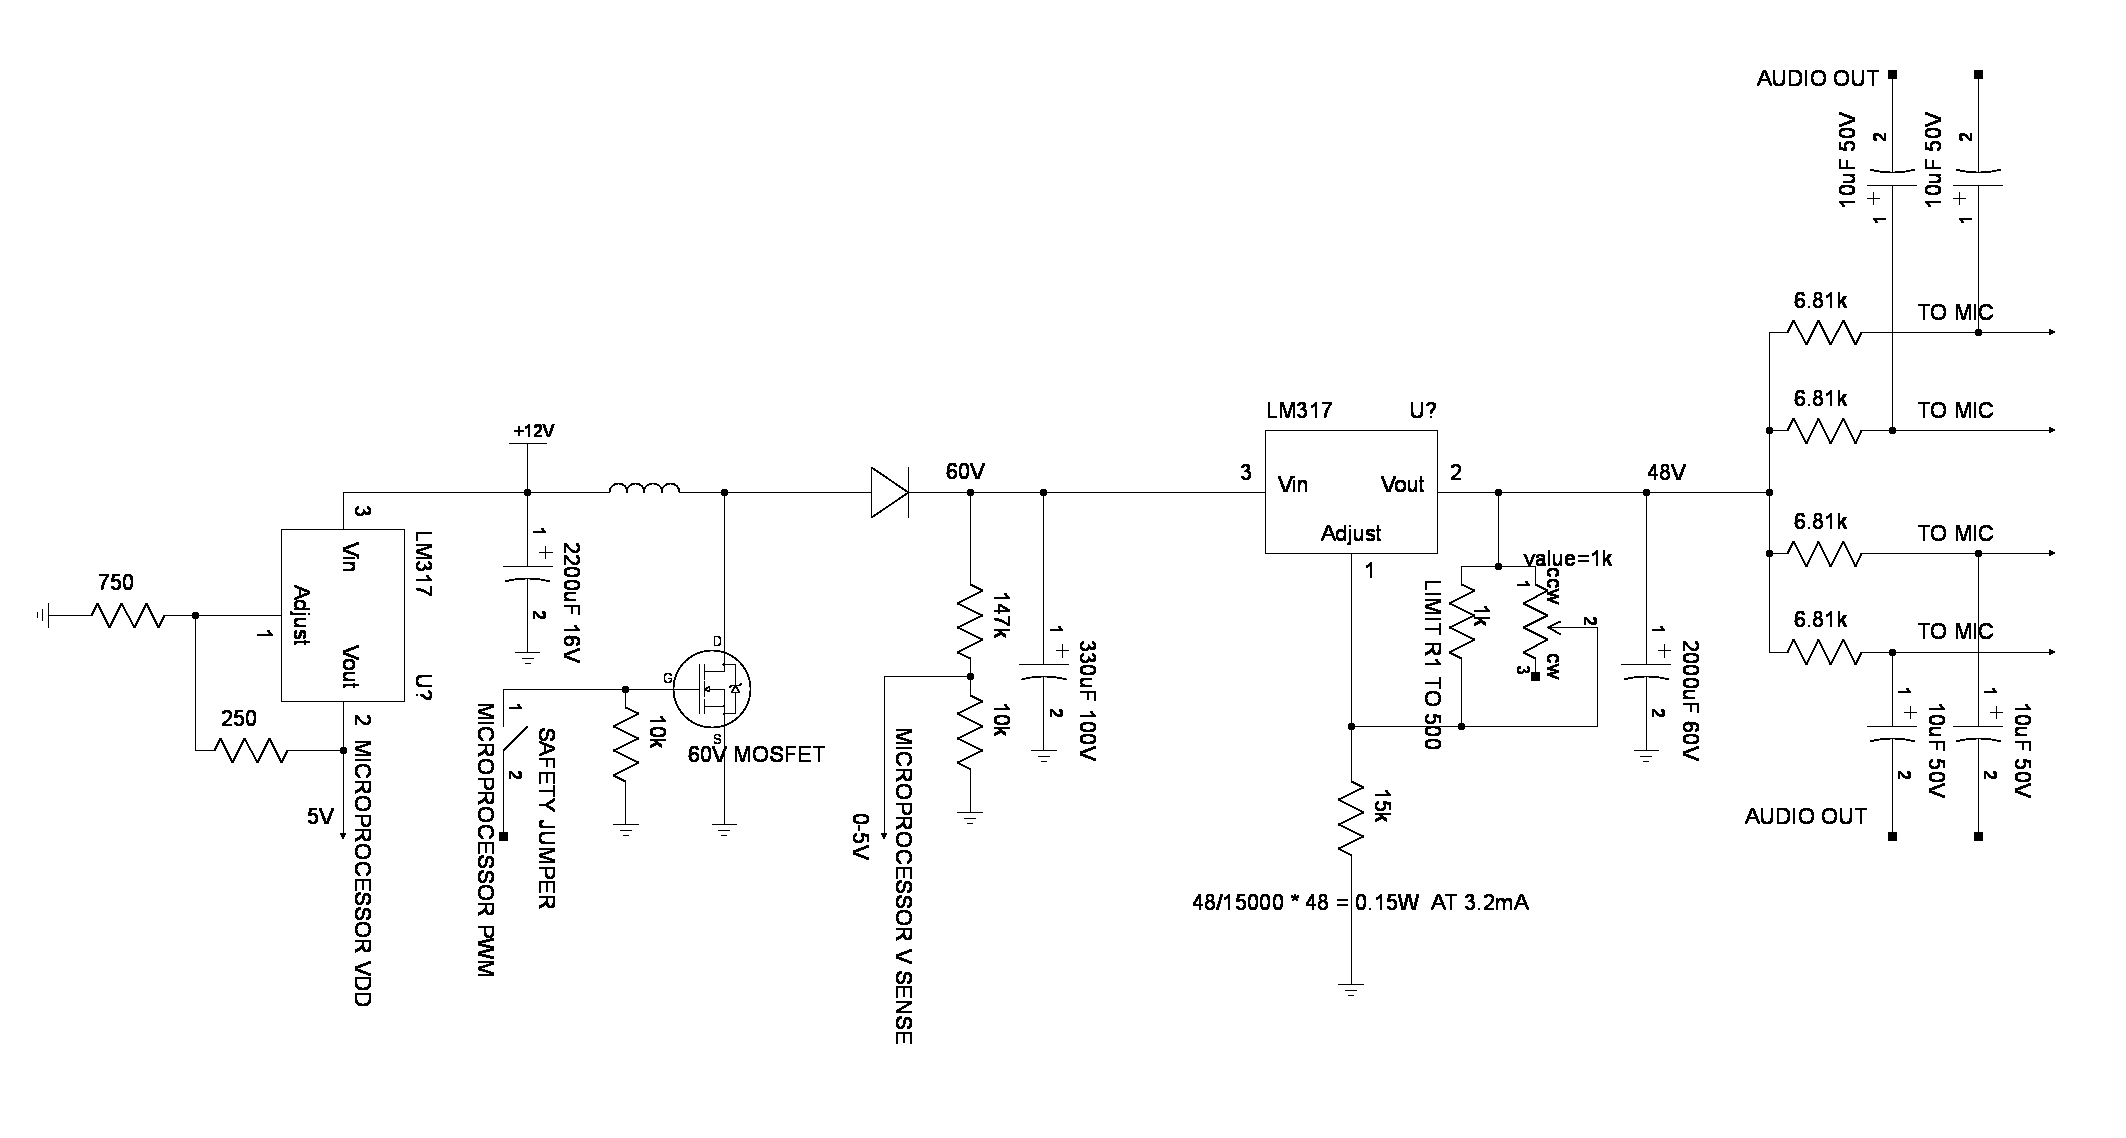 Ultimate Preamp Simple Singletransistor Circuit Provides Extremely Stable Beat The New Boost Converter Used A Linear Regulator To Drop An Unstable 50 60v 48v